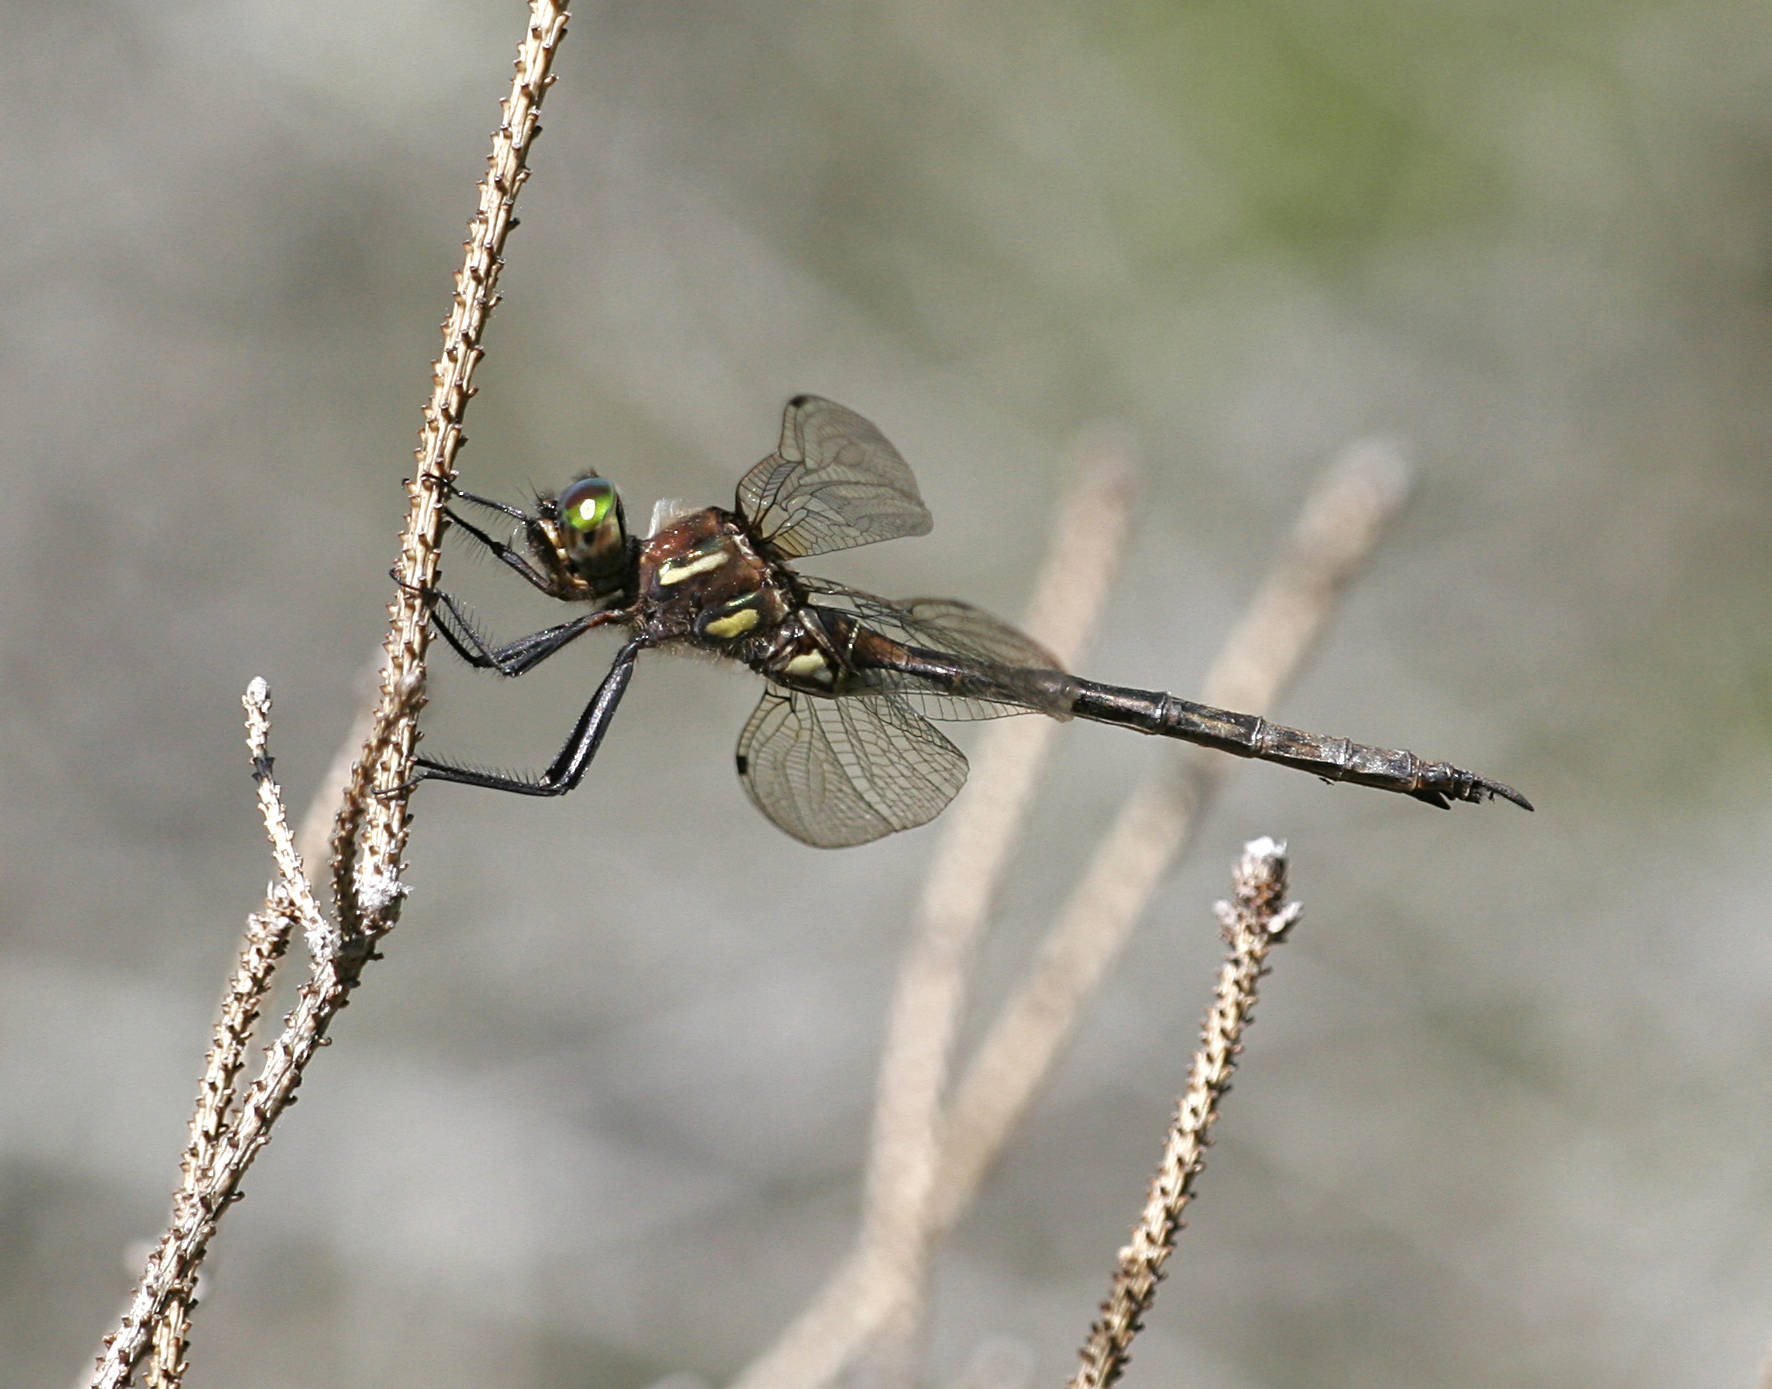 A 2010 oil spill near Lockport harmed protected wetlands and a habitat for the federally protected Hine's emerald dragonfly, officials say.